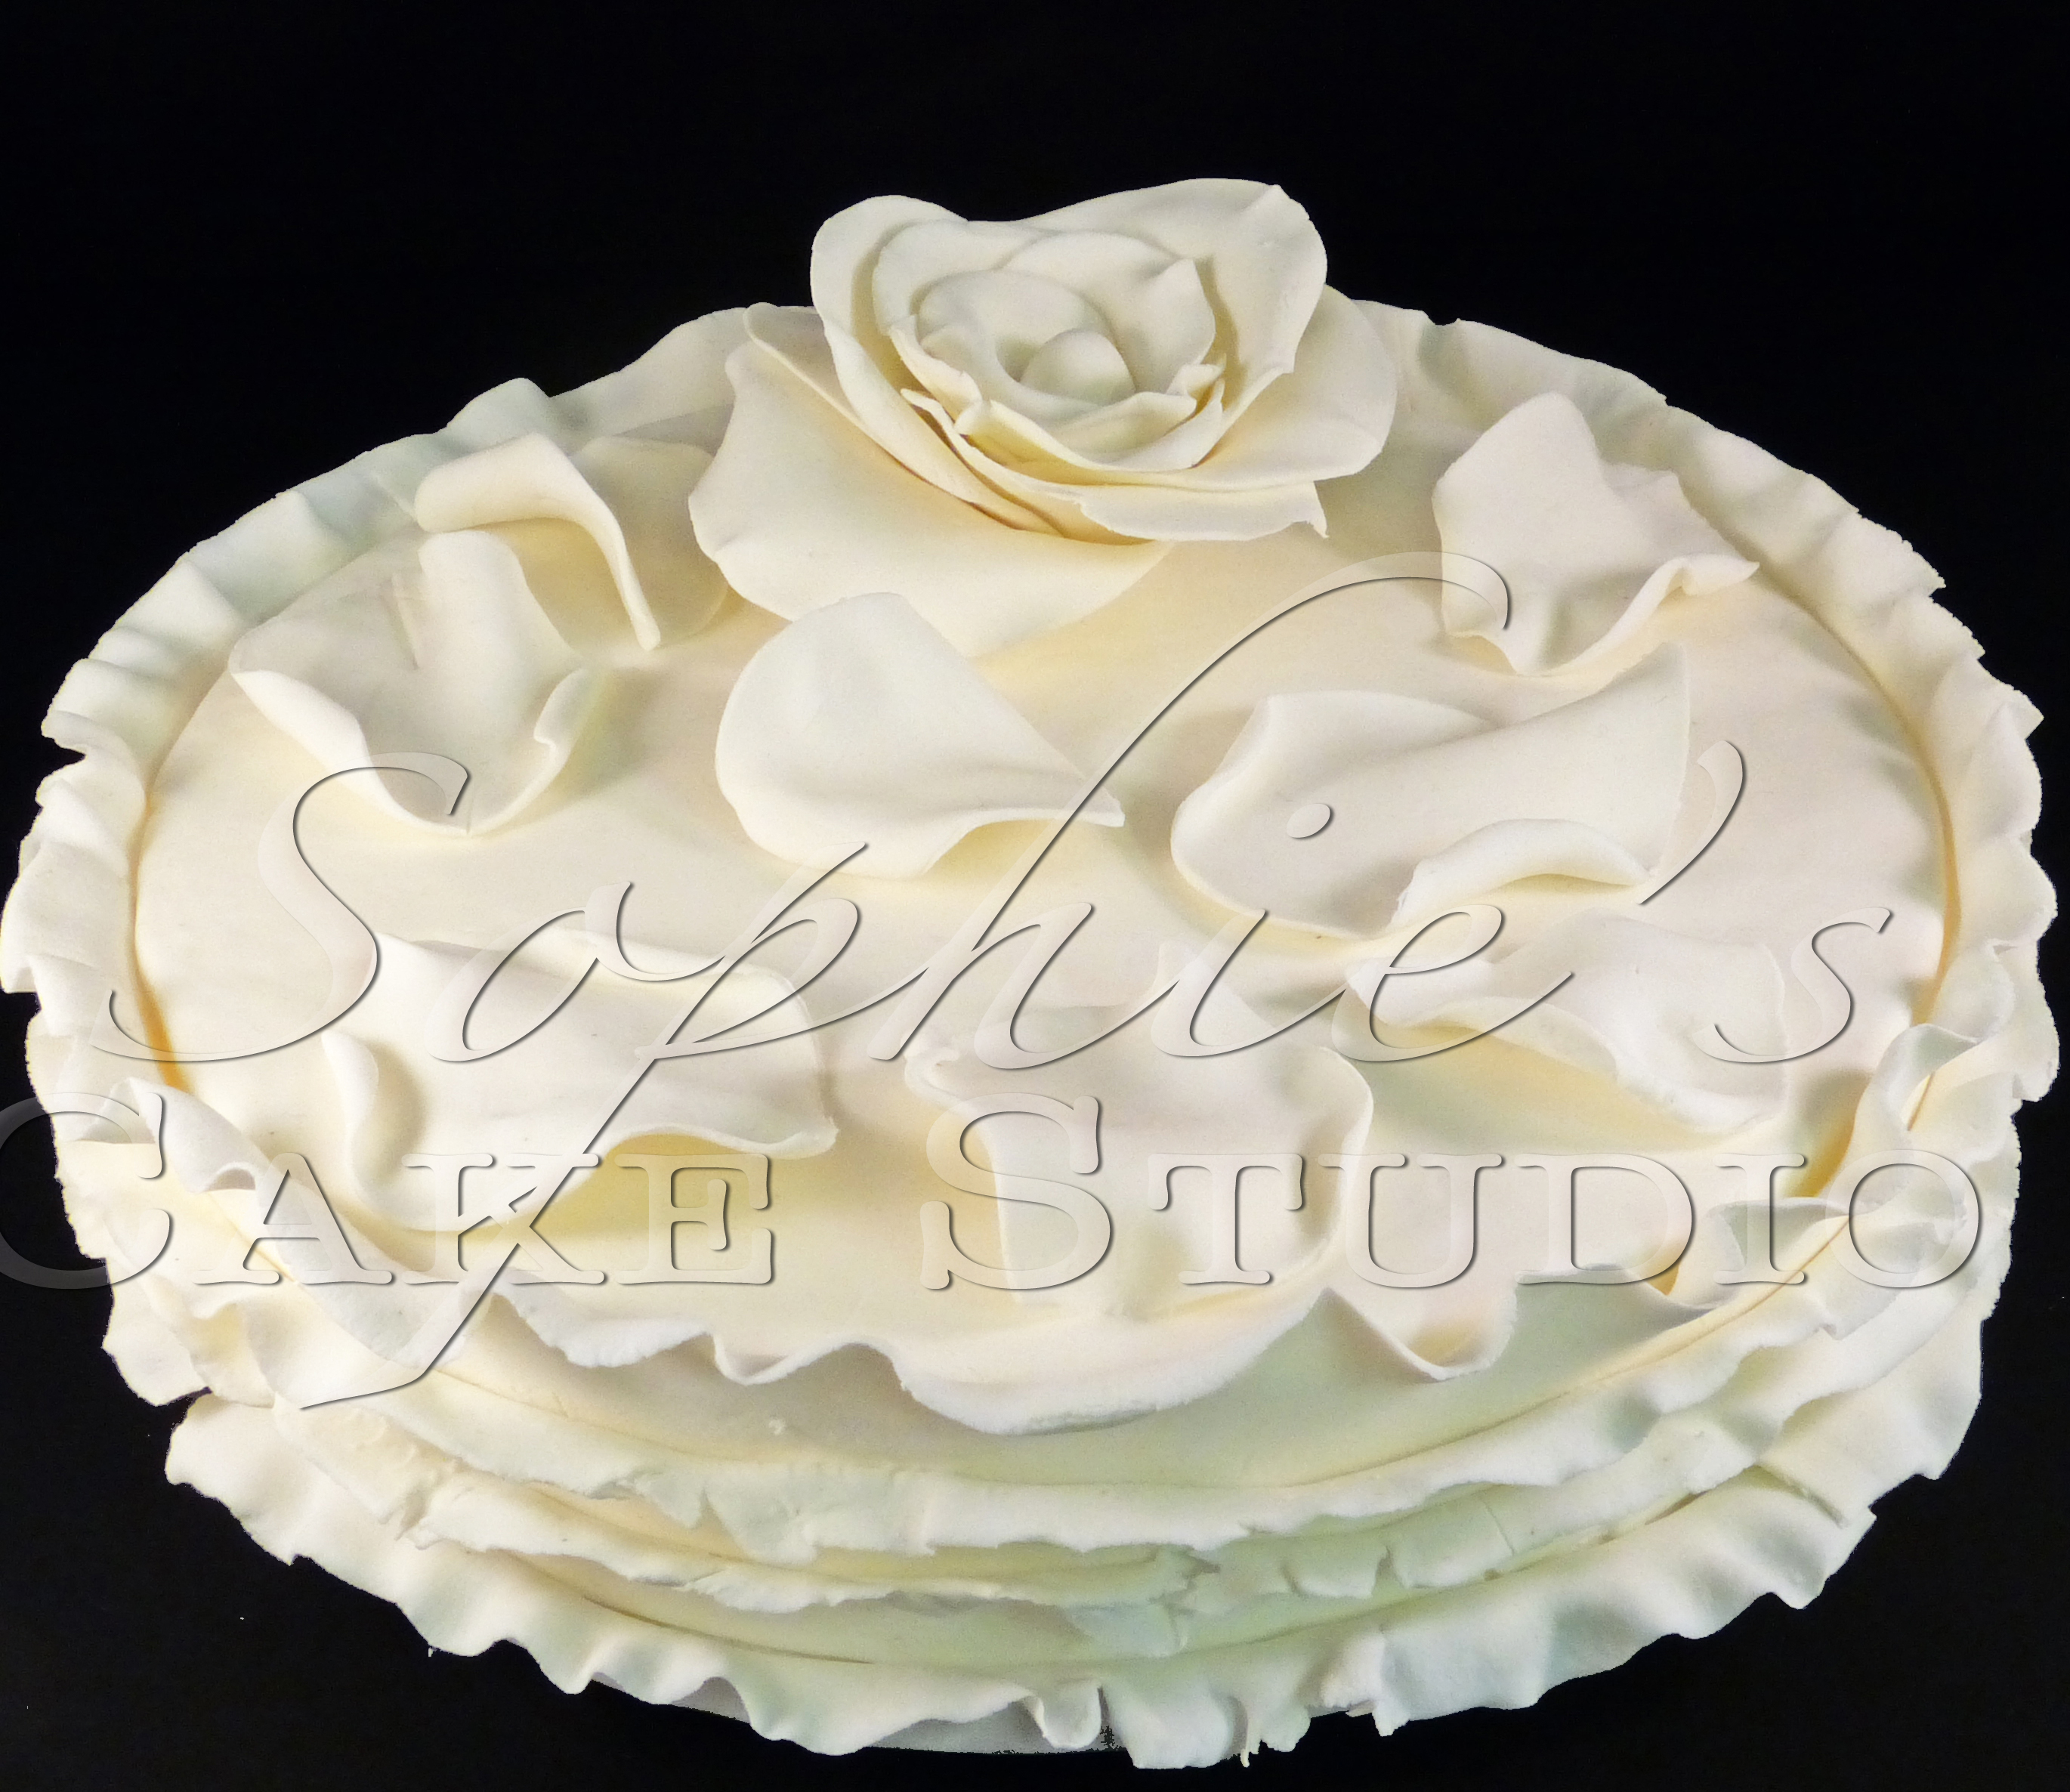 off white rose wedding cake